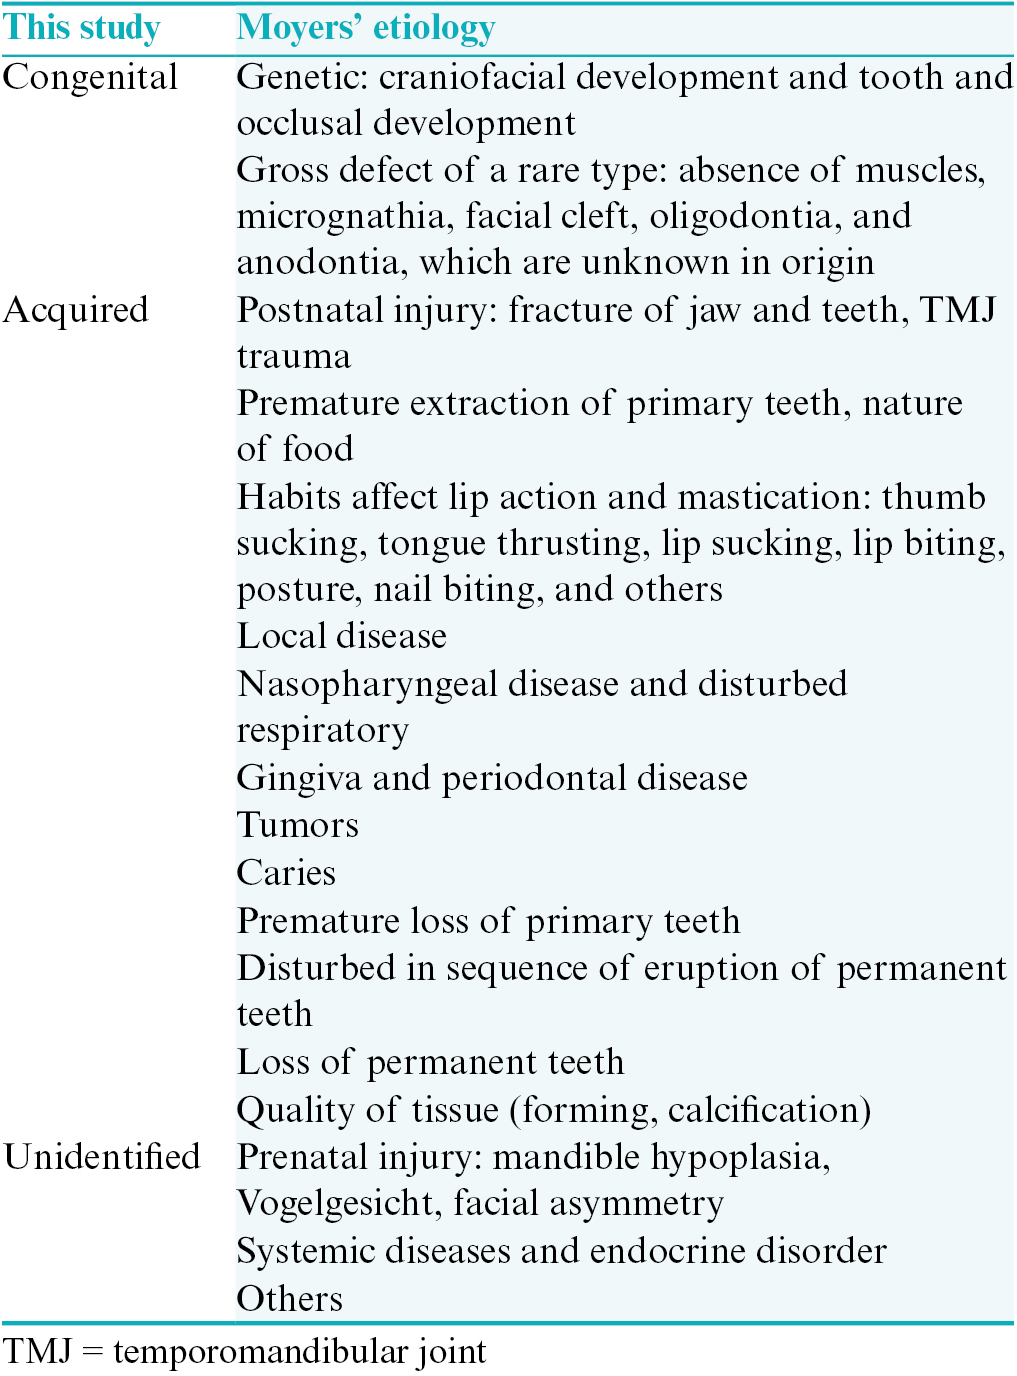 Table 1: Classification of possible etiology used in this study (modified from Moyers<sup>[4]</sup>)